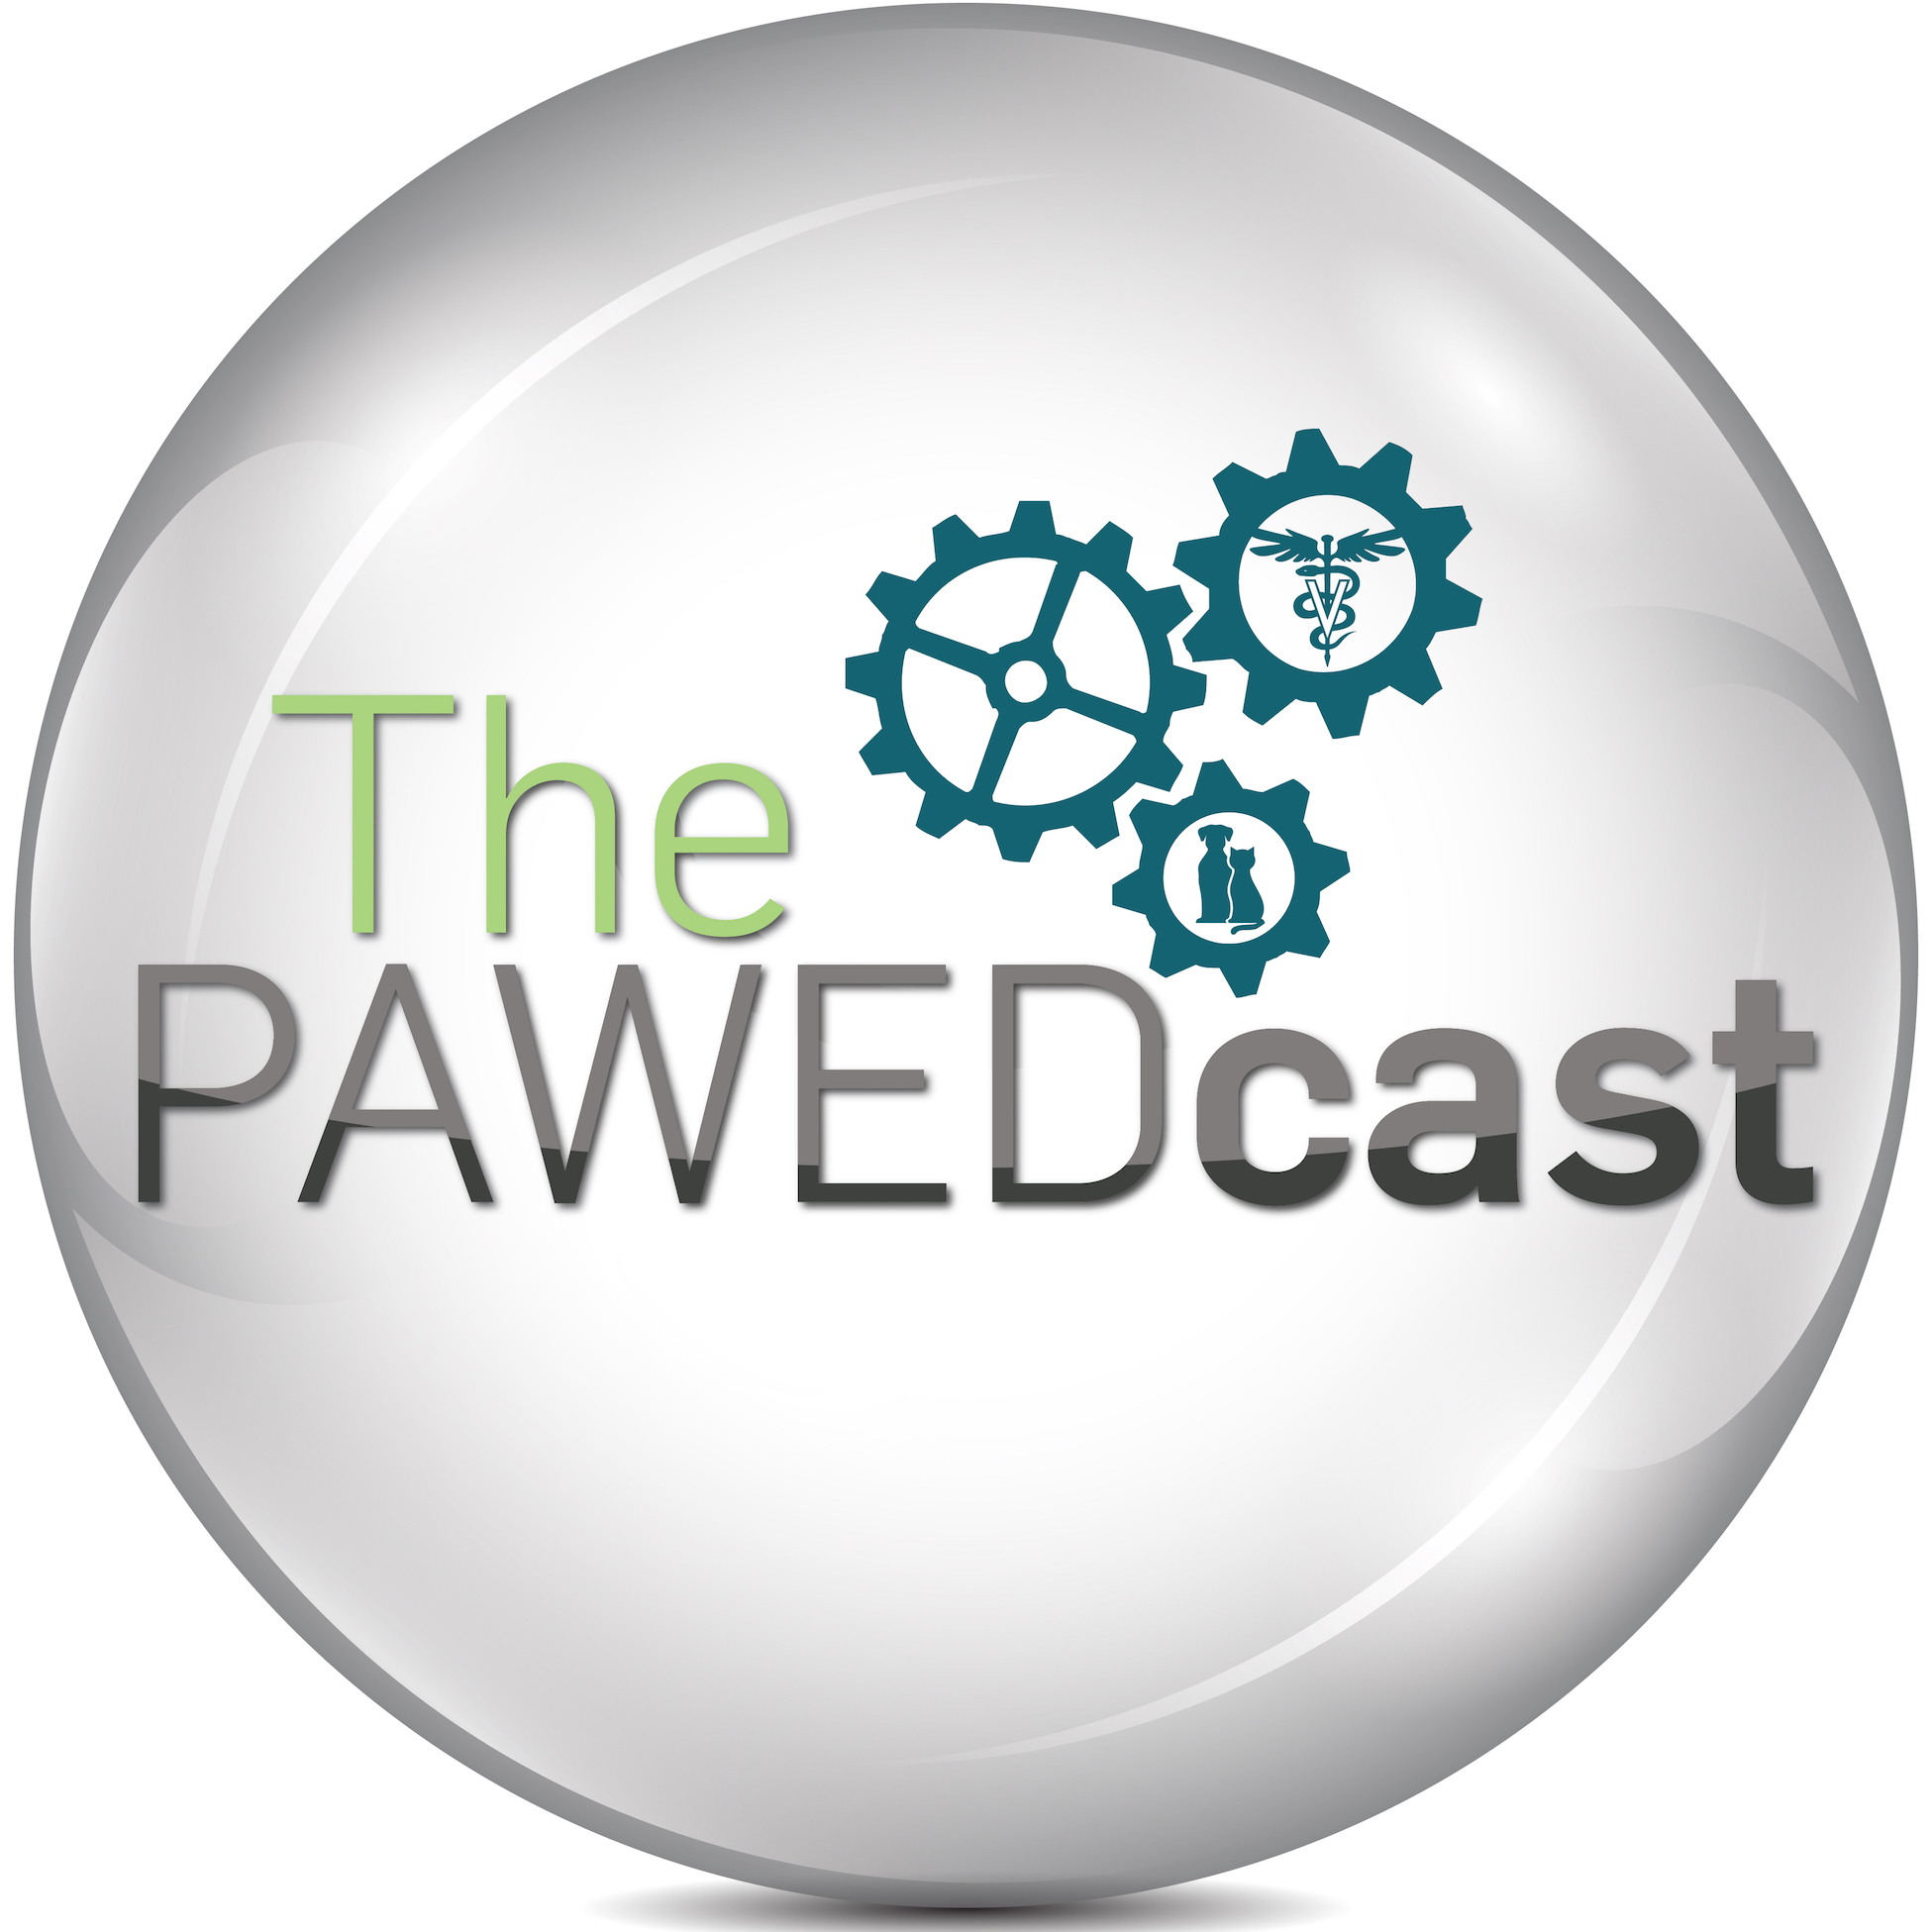 The Pawedcast